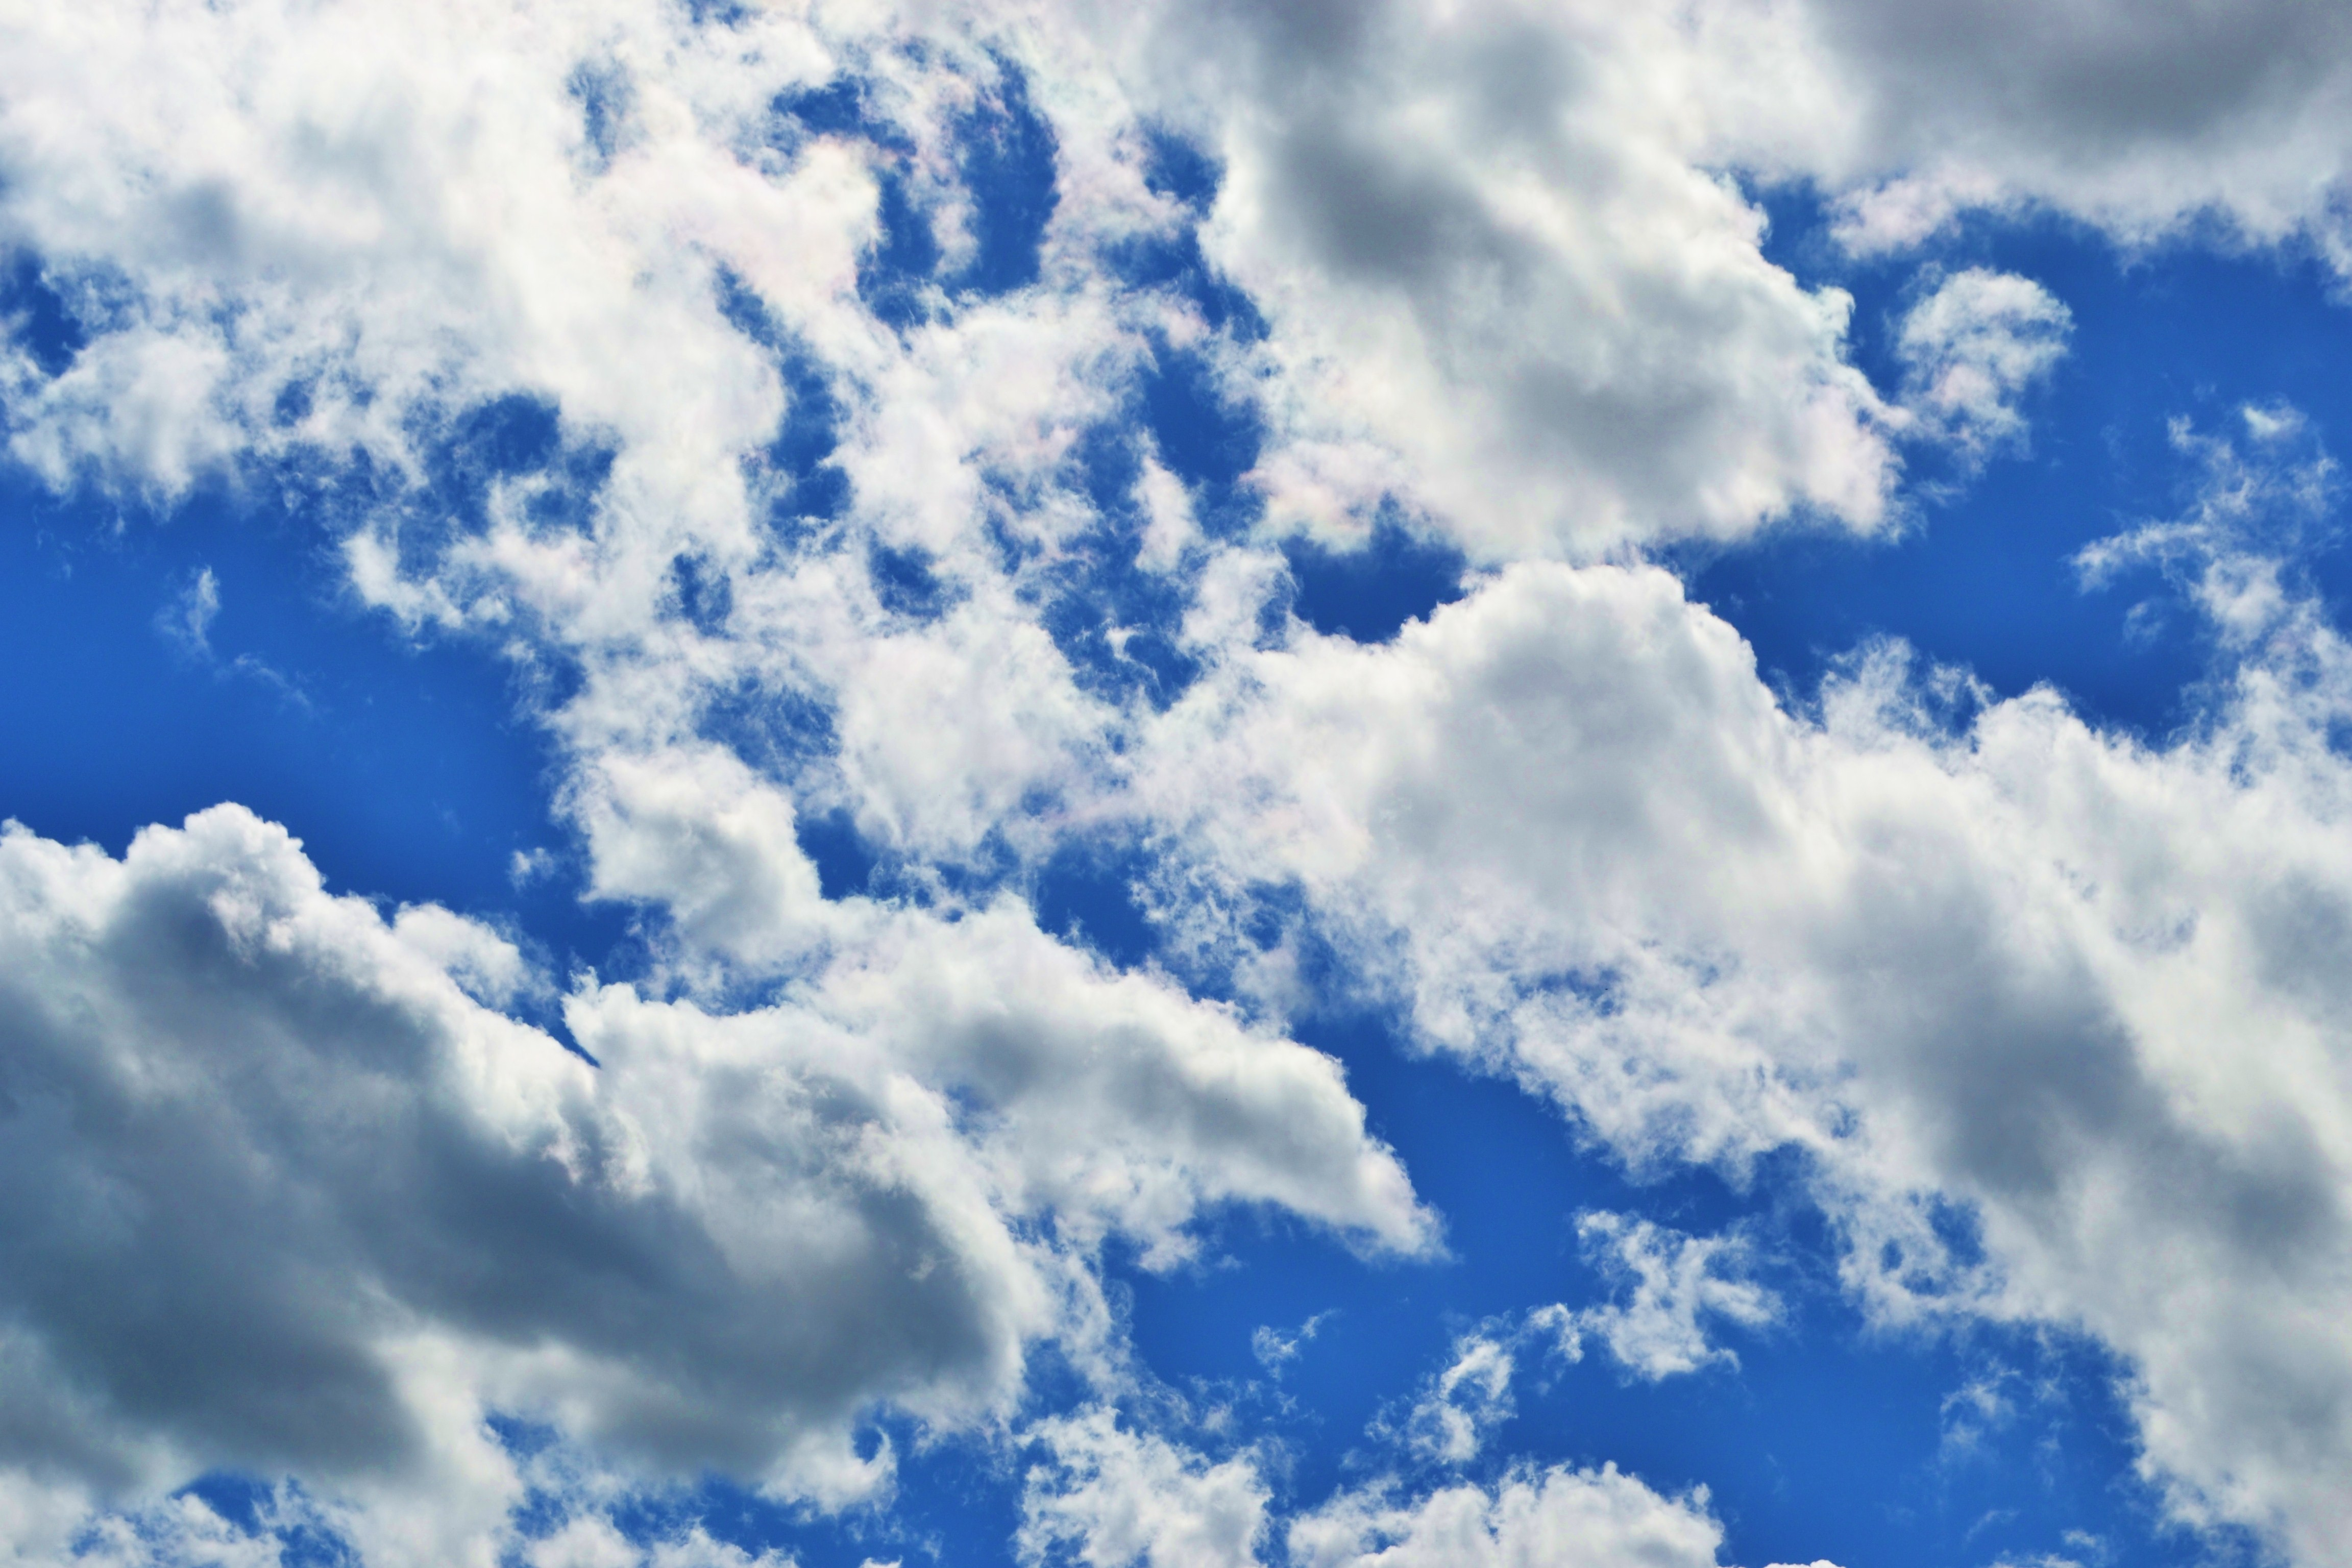 clouds skyscapes blue skies HD Wallpaper